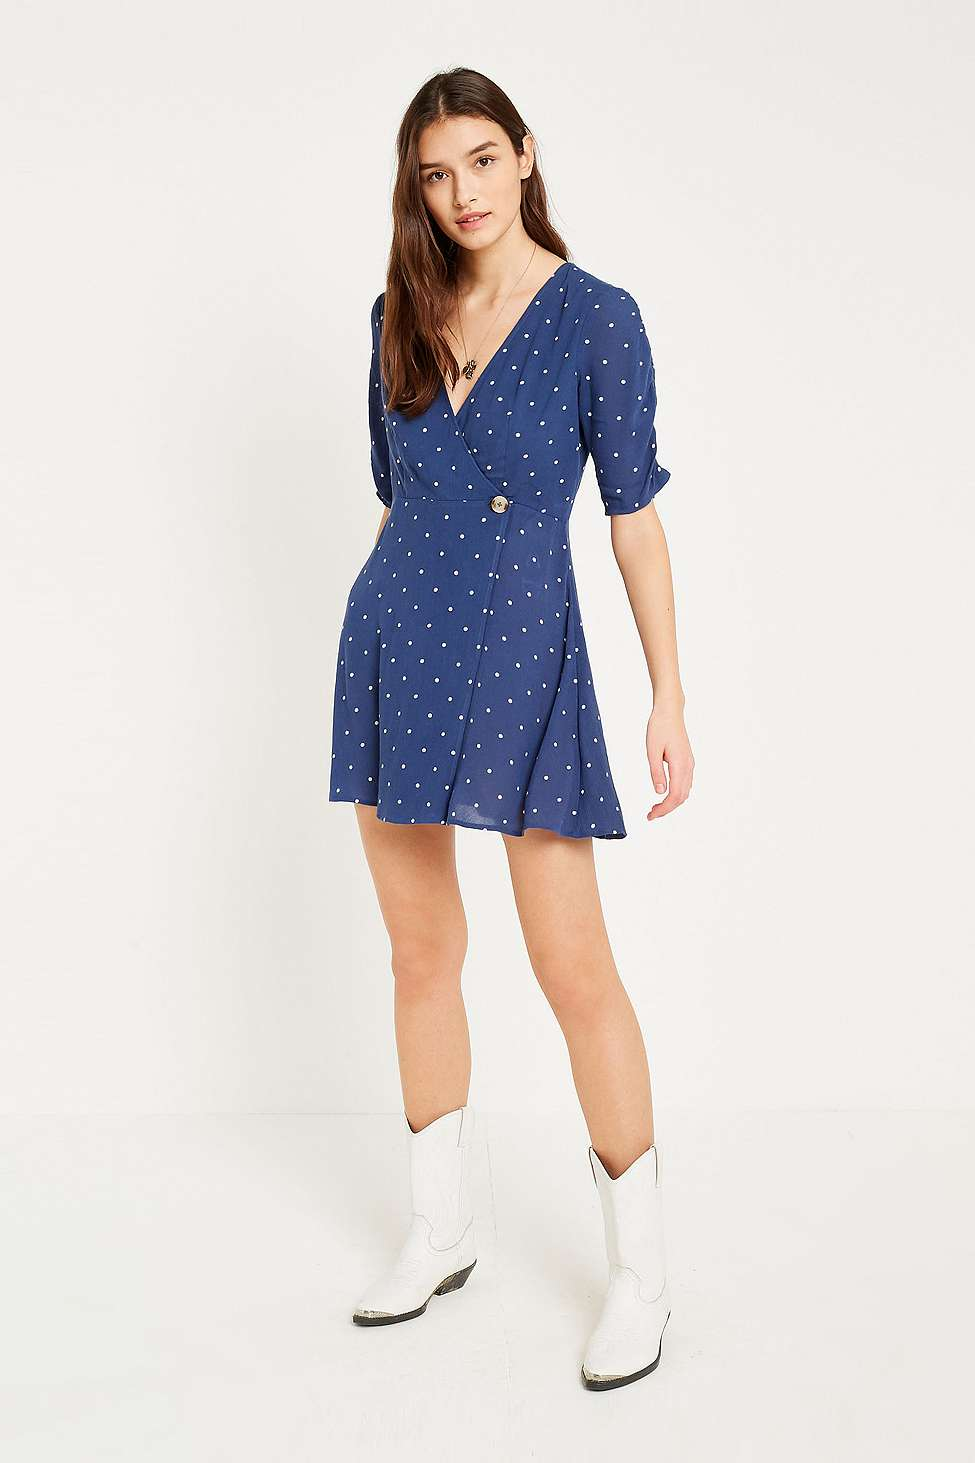 Slide View: 1: UO Spotted Wrap Dress